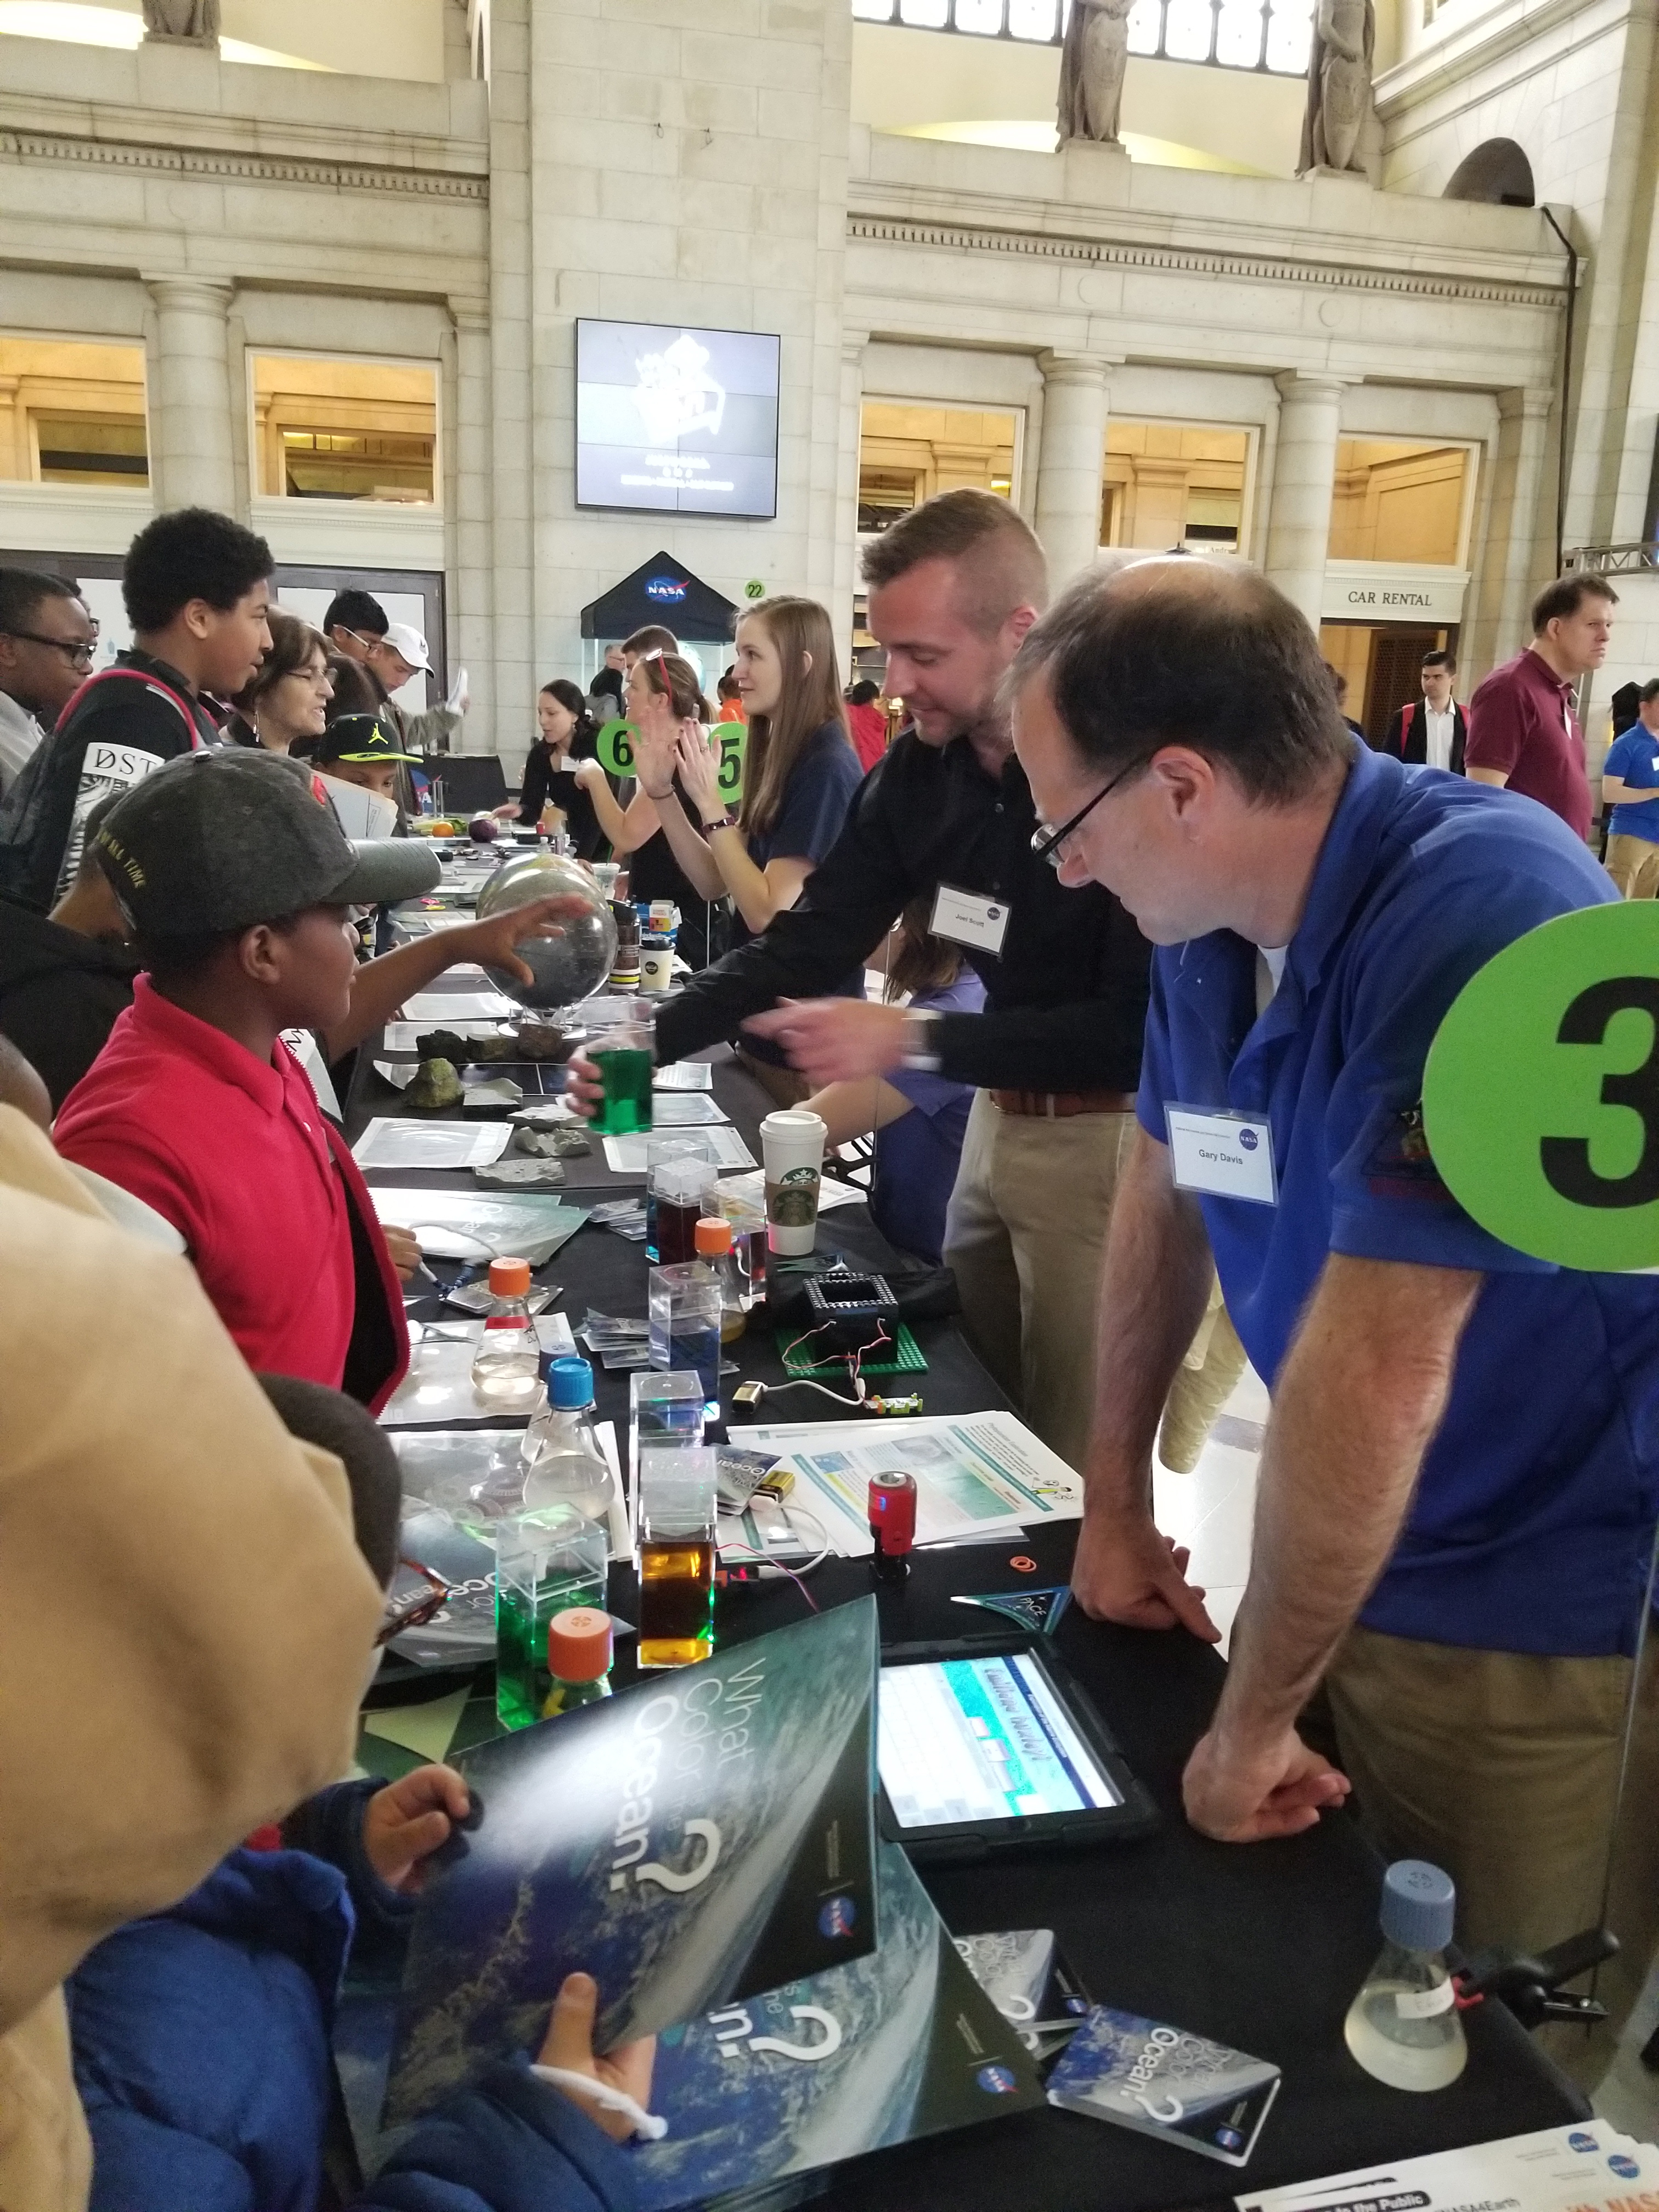 Visitors at the NASA Earth Day Celebration at Union Station (Washington D.C.) check out water with different optical properties while learning about PACE ocean color measurements.